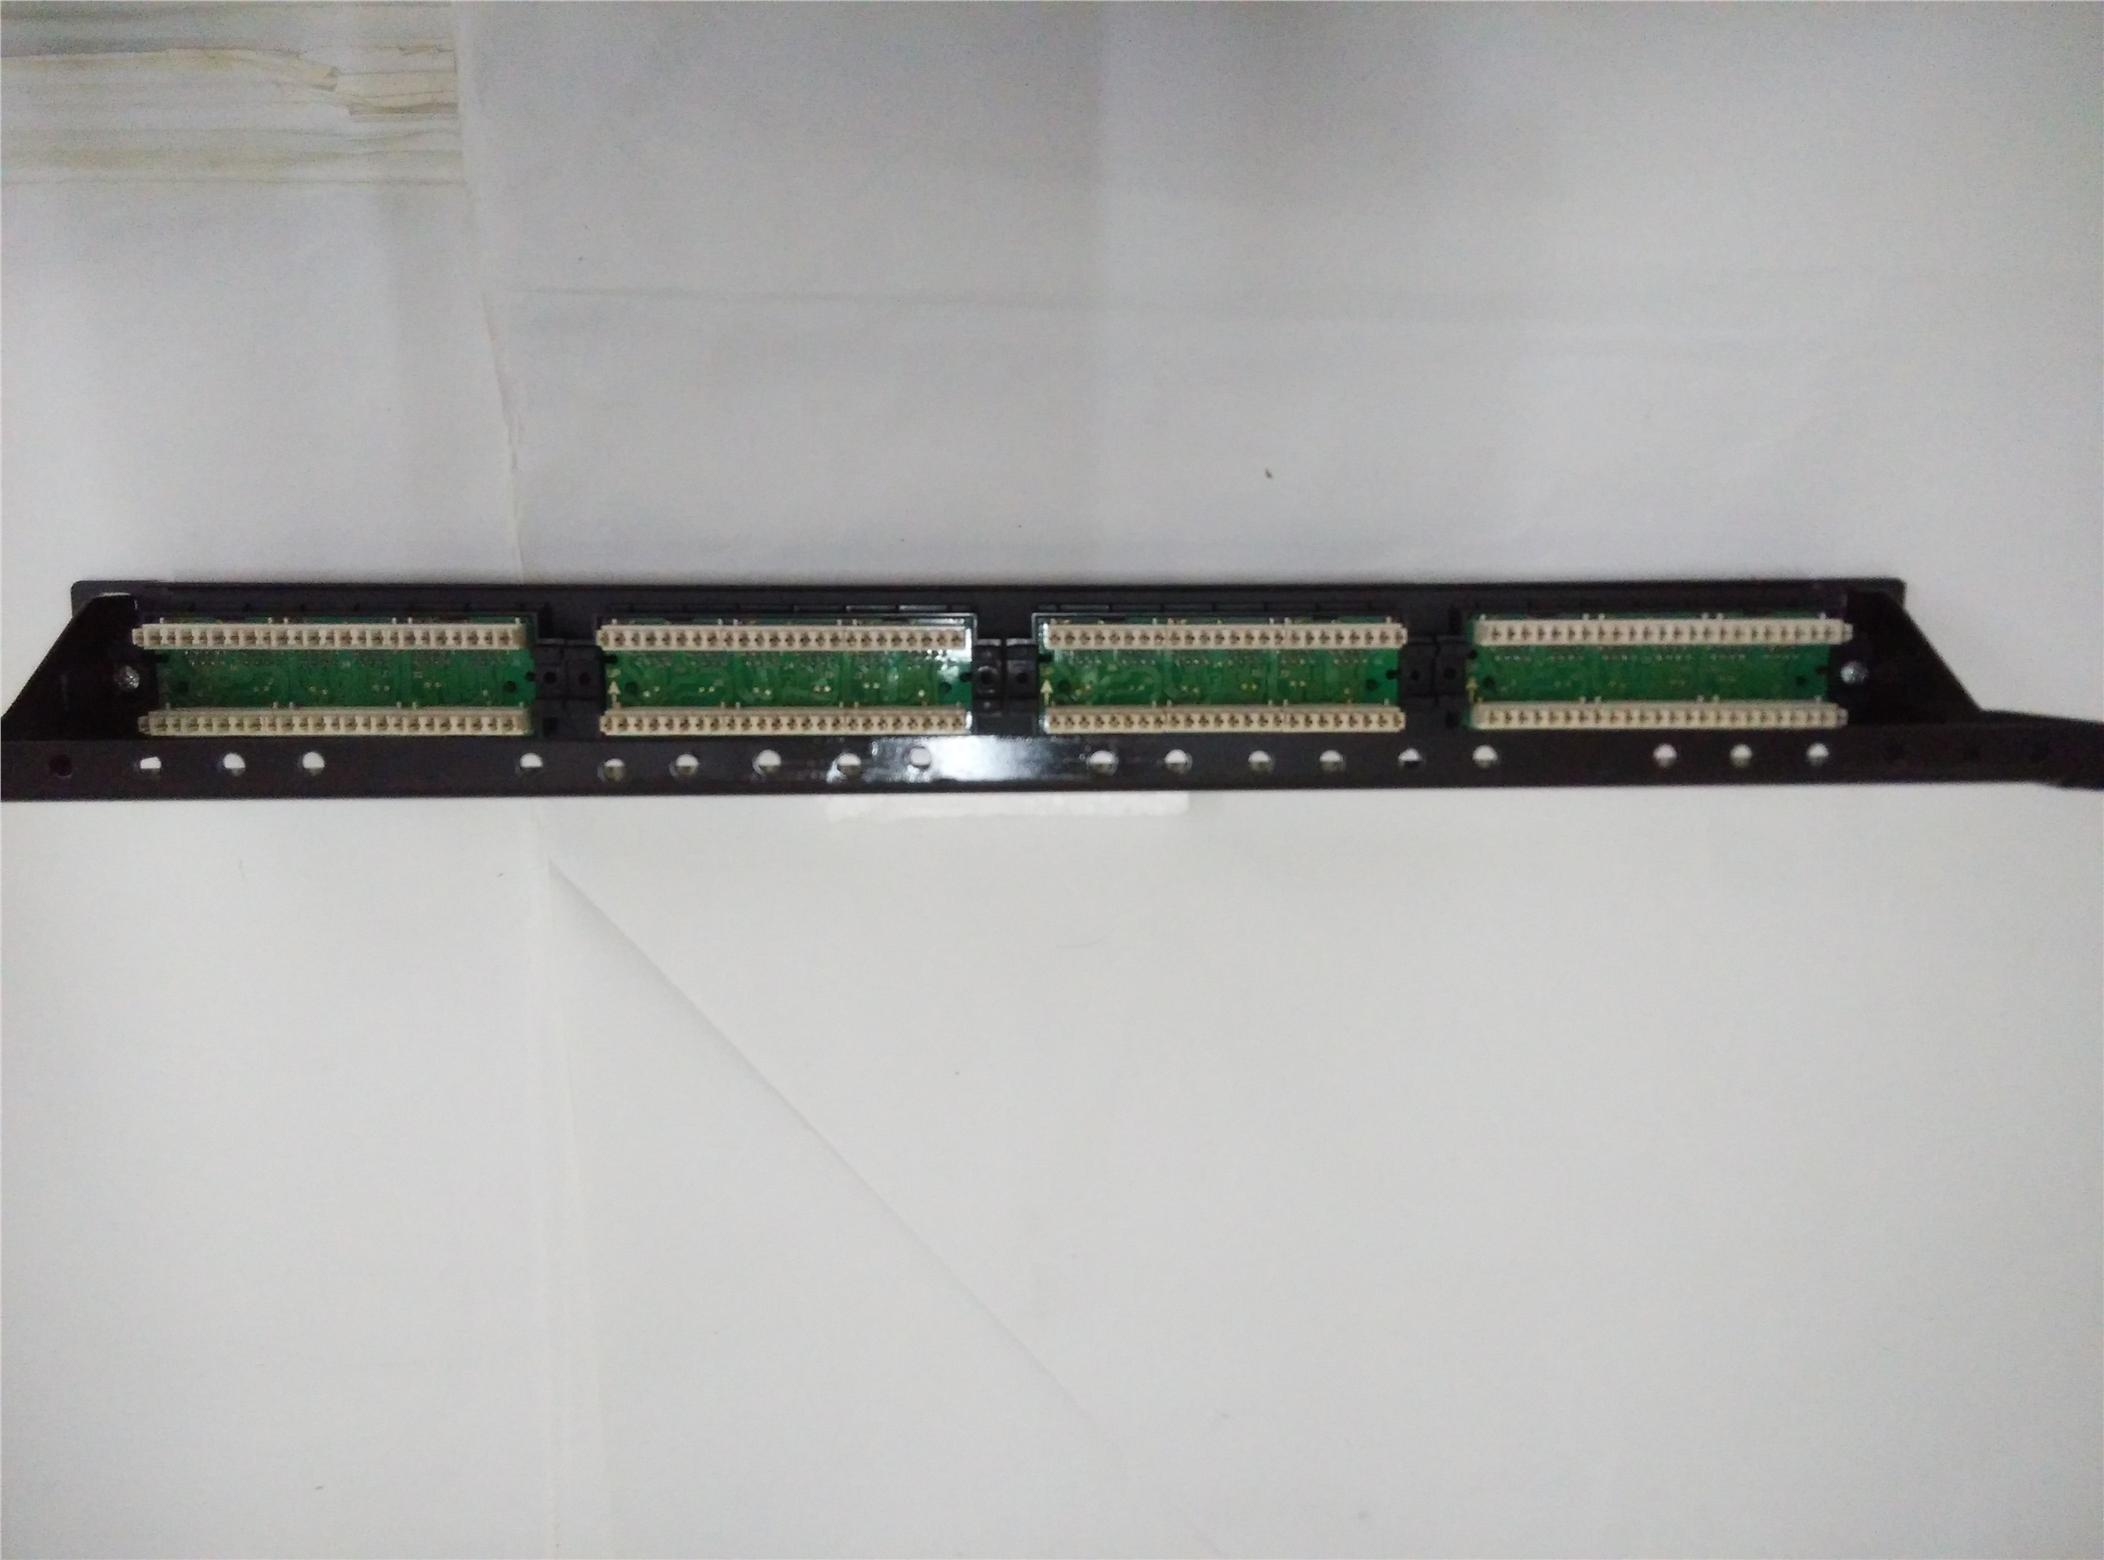 Network cable - Patch Panel Cable Support Tray